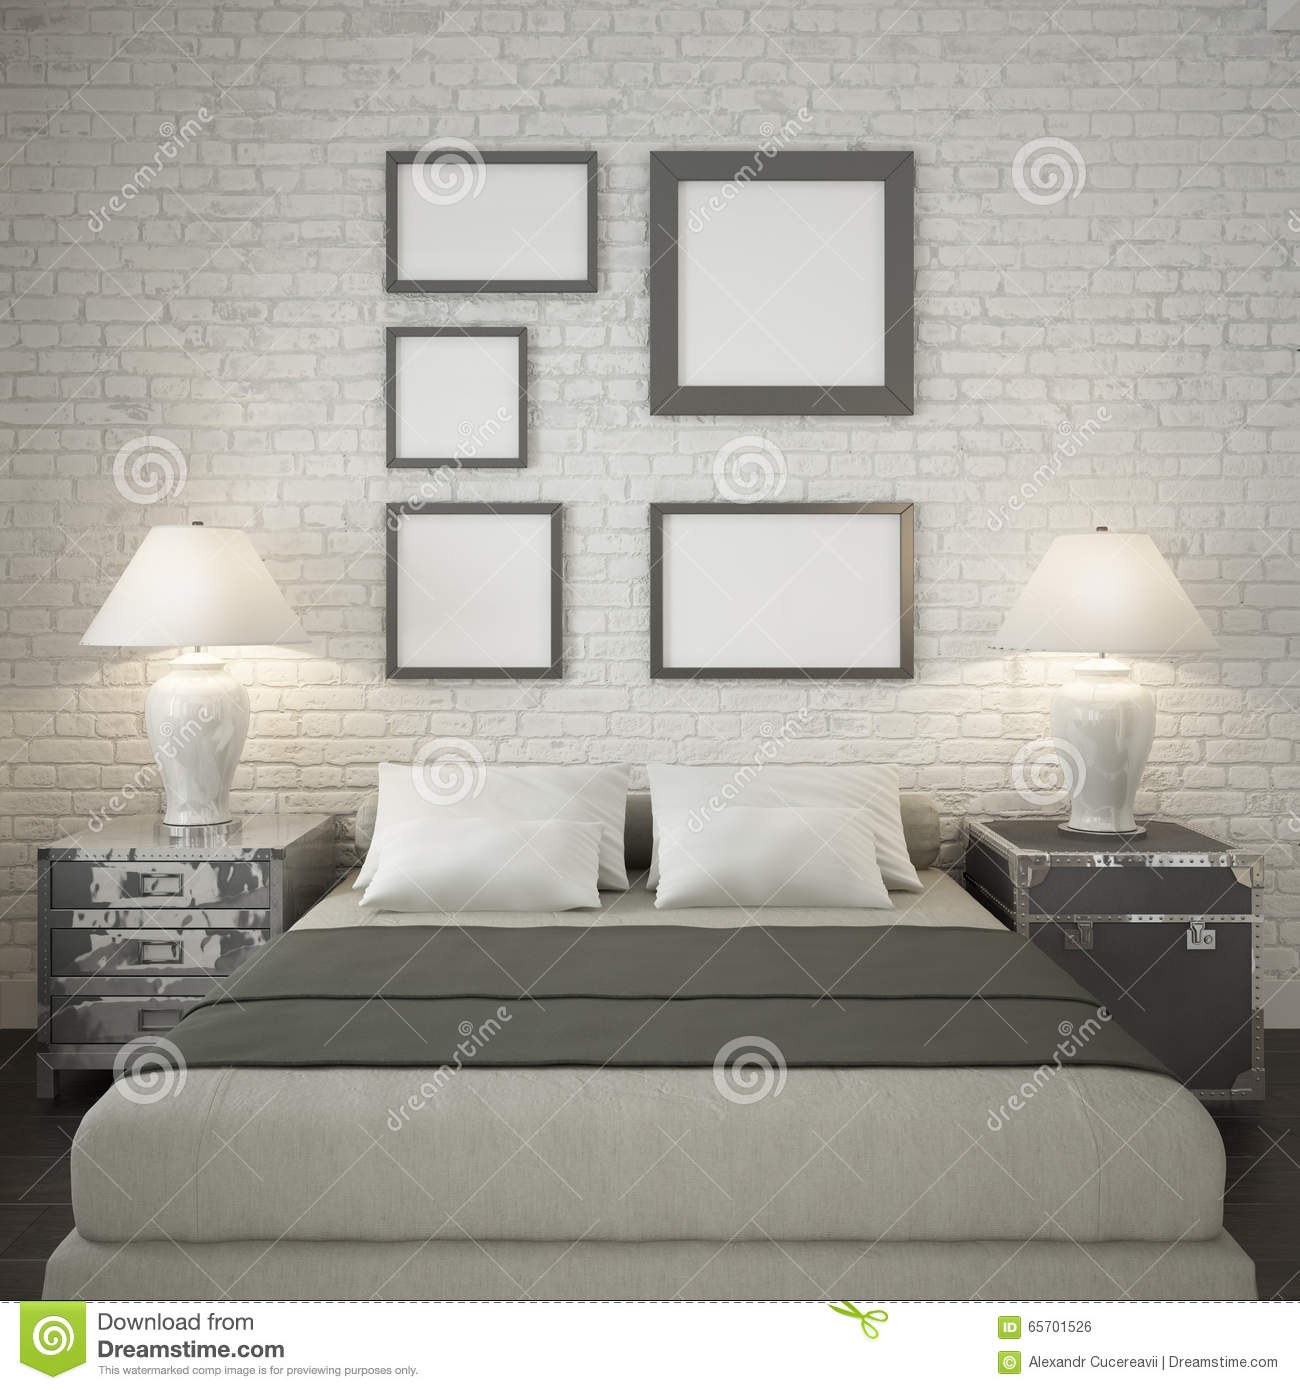 bedroom headboards best free home design idea. Black Bedroom Furniture Sets. Home Design Ideas